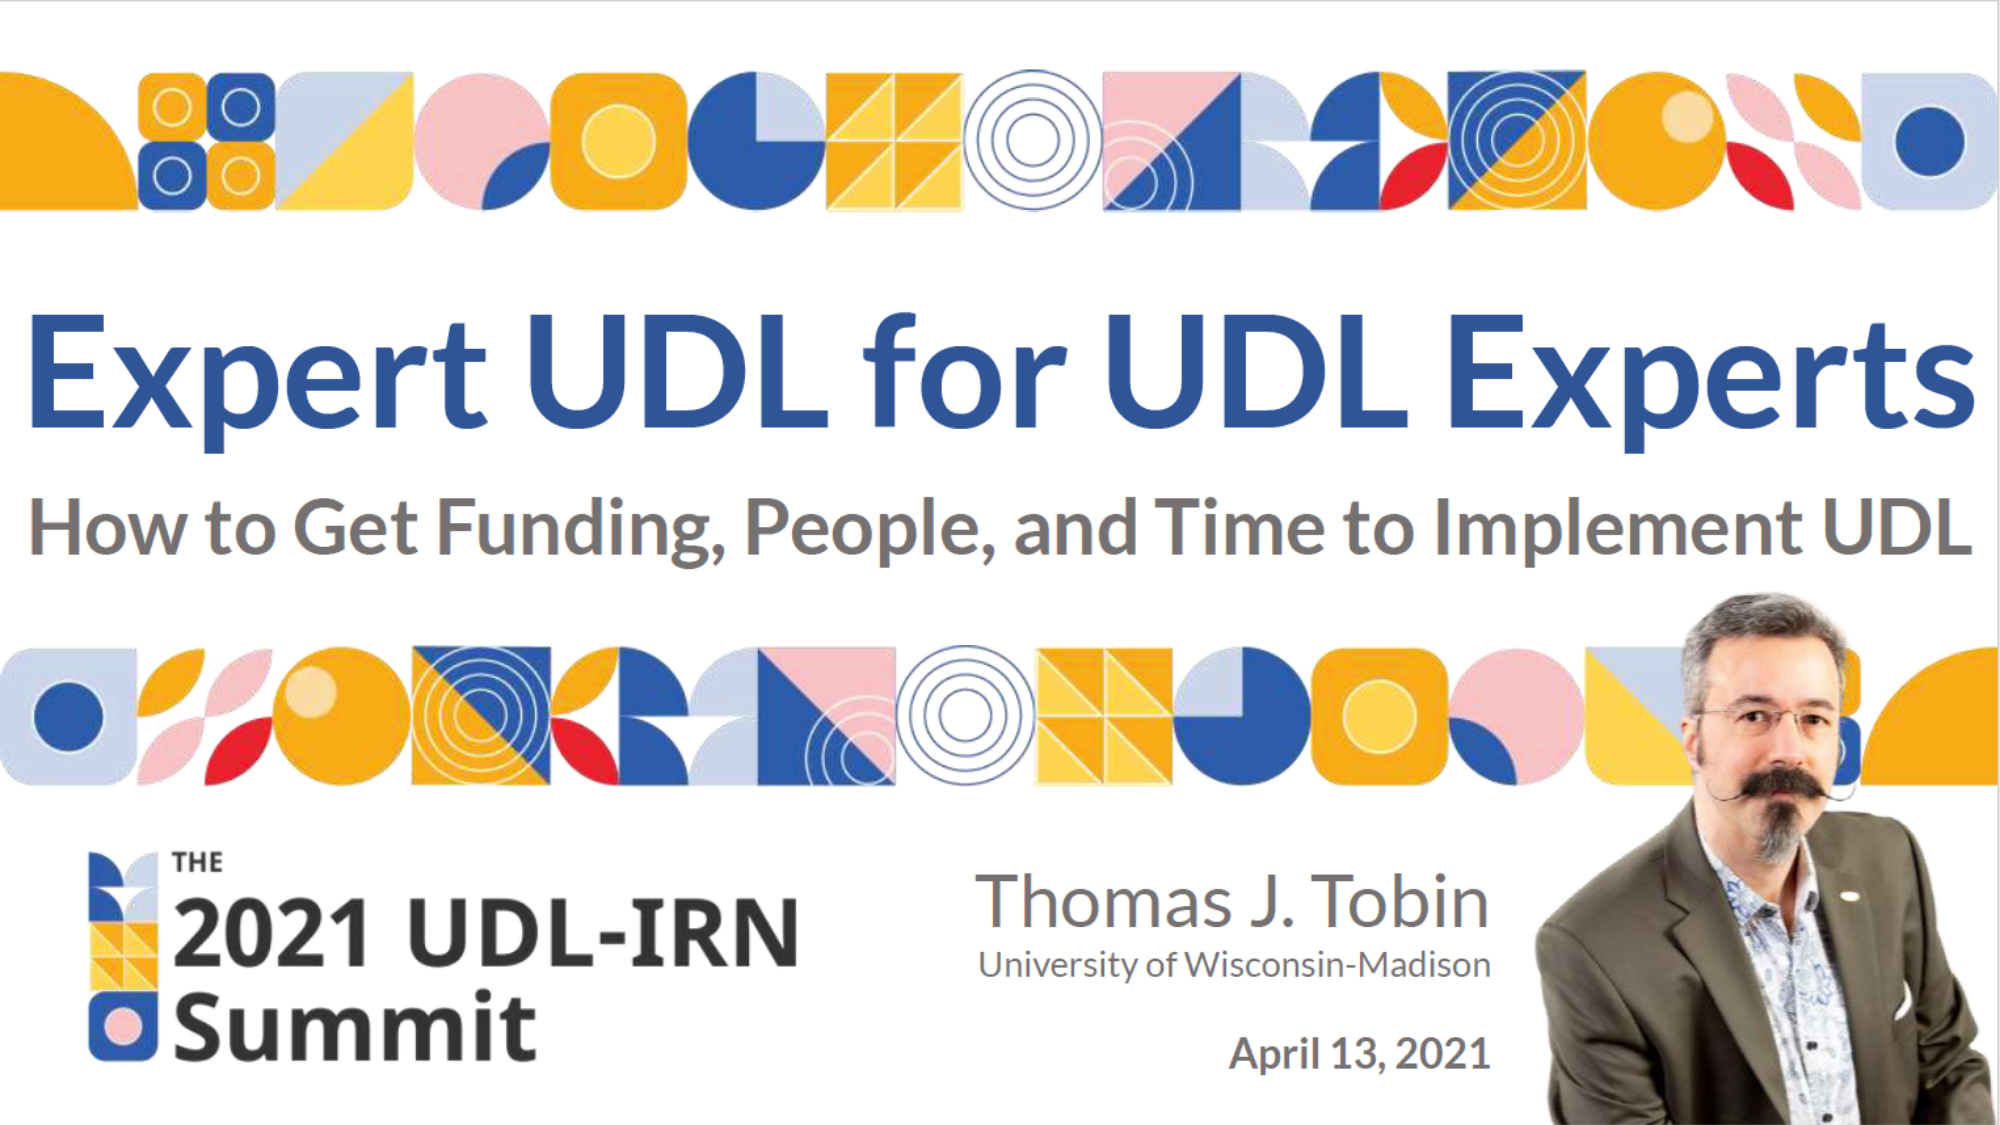 Tile shows session title: Expert UDL for UDL Experts